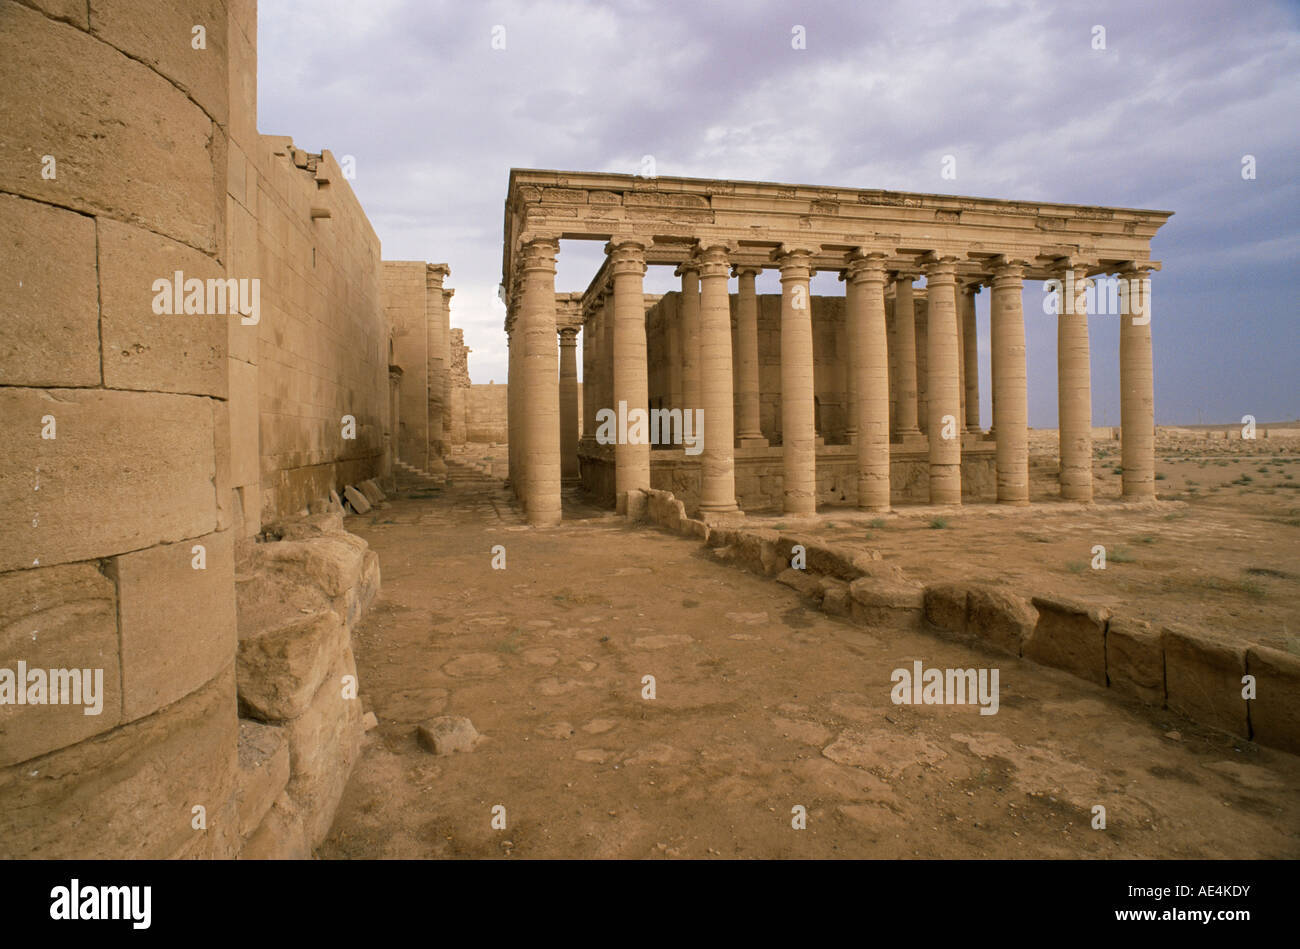 Temple of Allat, Hatra, UNESCO World Heritage Site, Iraq, Middle East - Stock Image